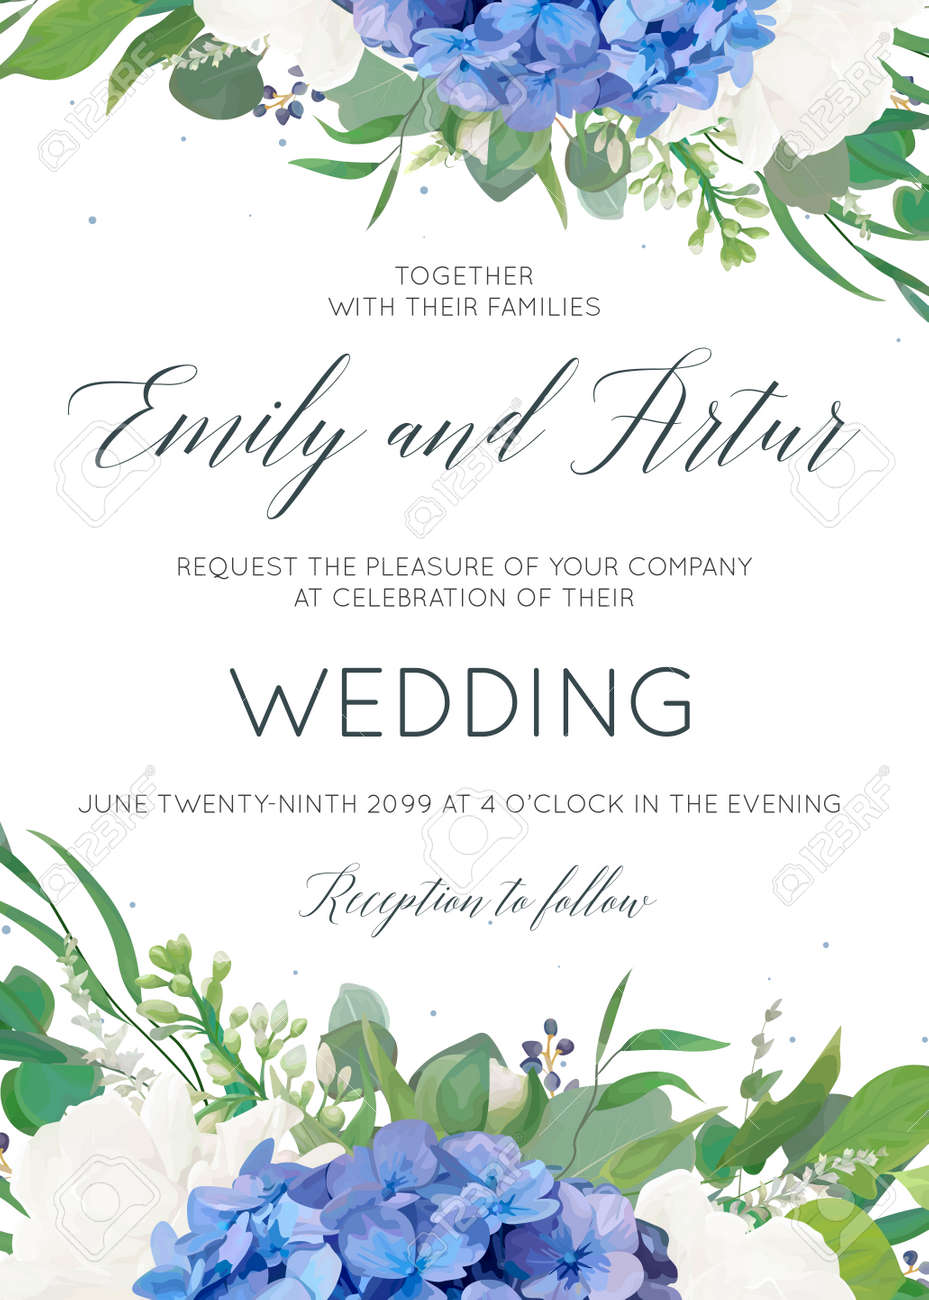 Wedding floral invite, invitation, card design with elegant bouquet of blue hydrangea flowers, white garden roses, green eucalyptus, lilac branches, greenery herbs, leaves, berries. Modern cute layout - 96980871